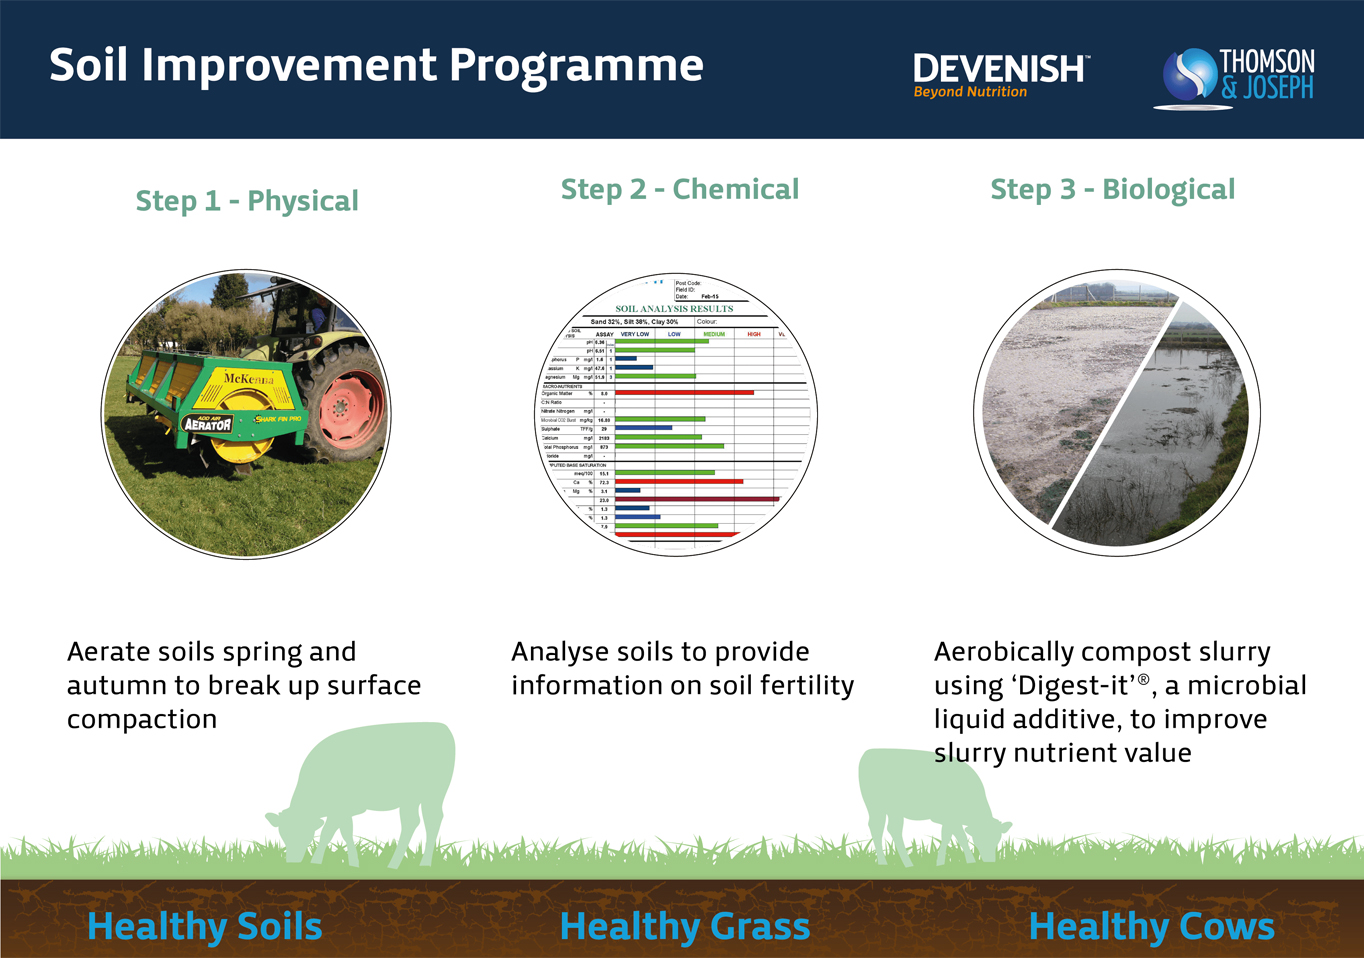 Three step soil improvement programme